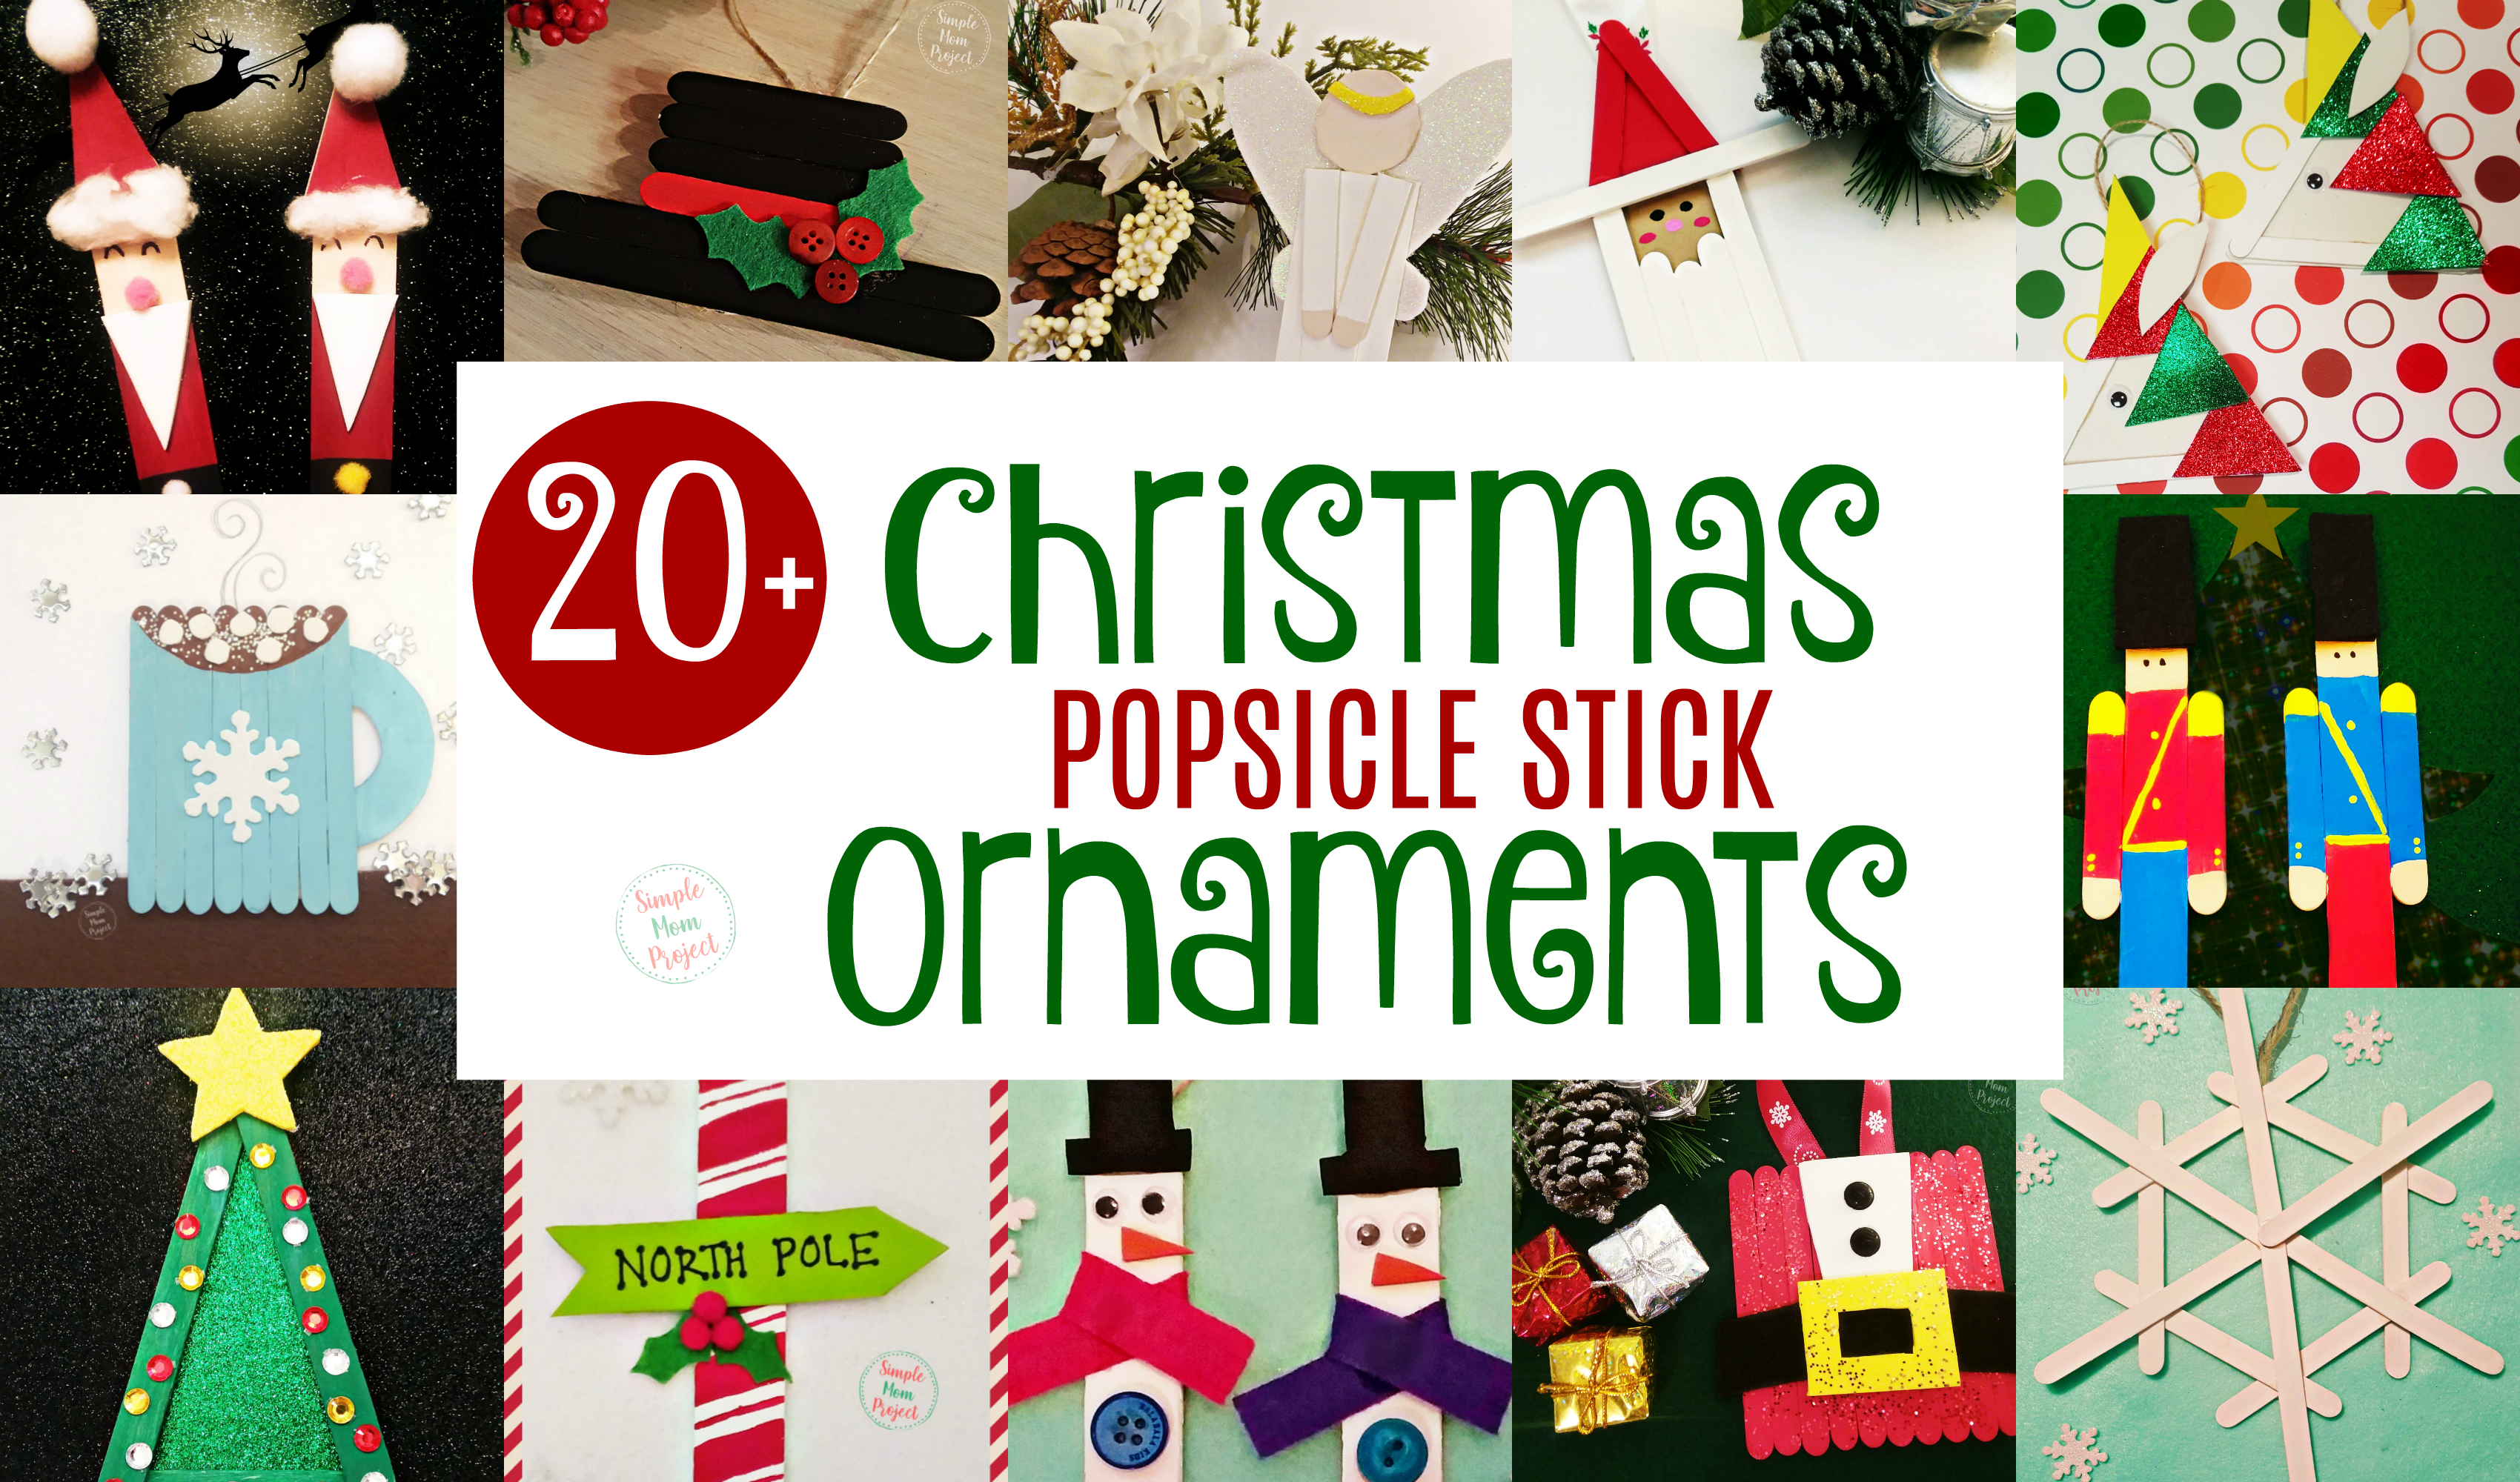 20+ DIY Christmas Popsicle Ornament Crafts For Kids